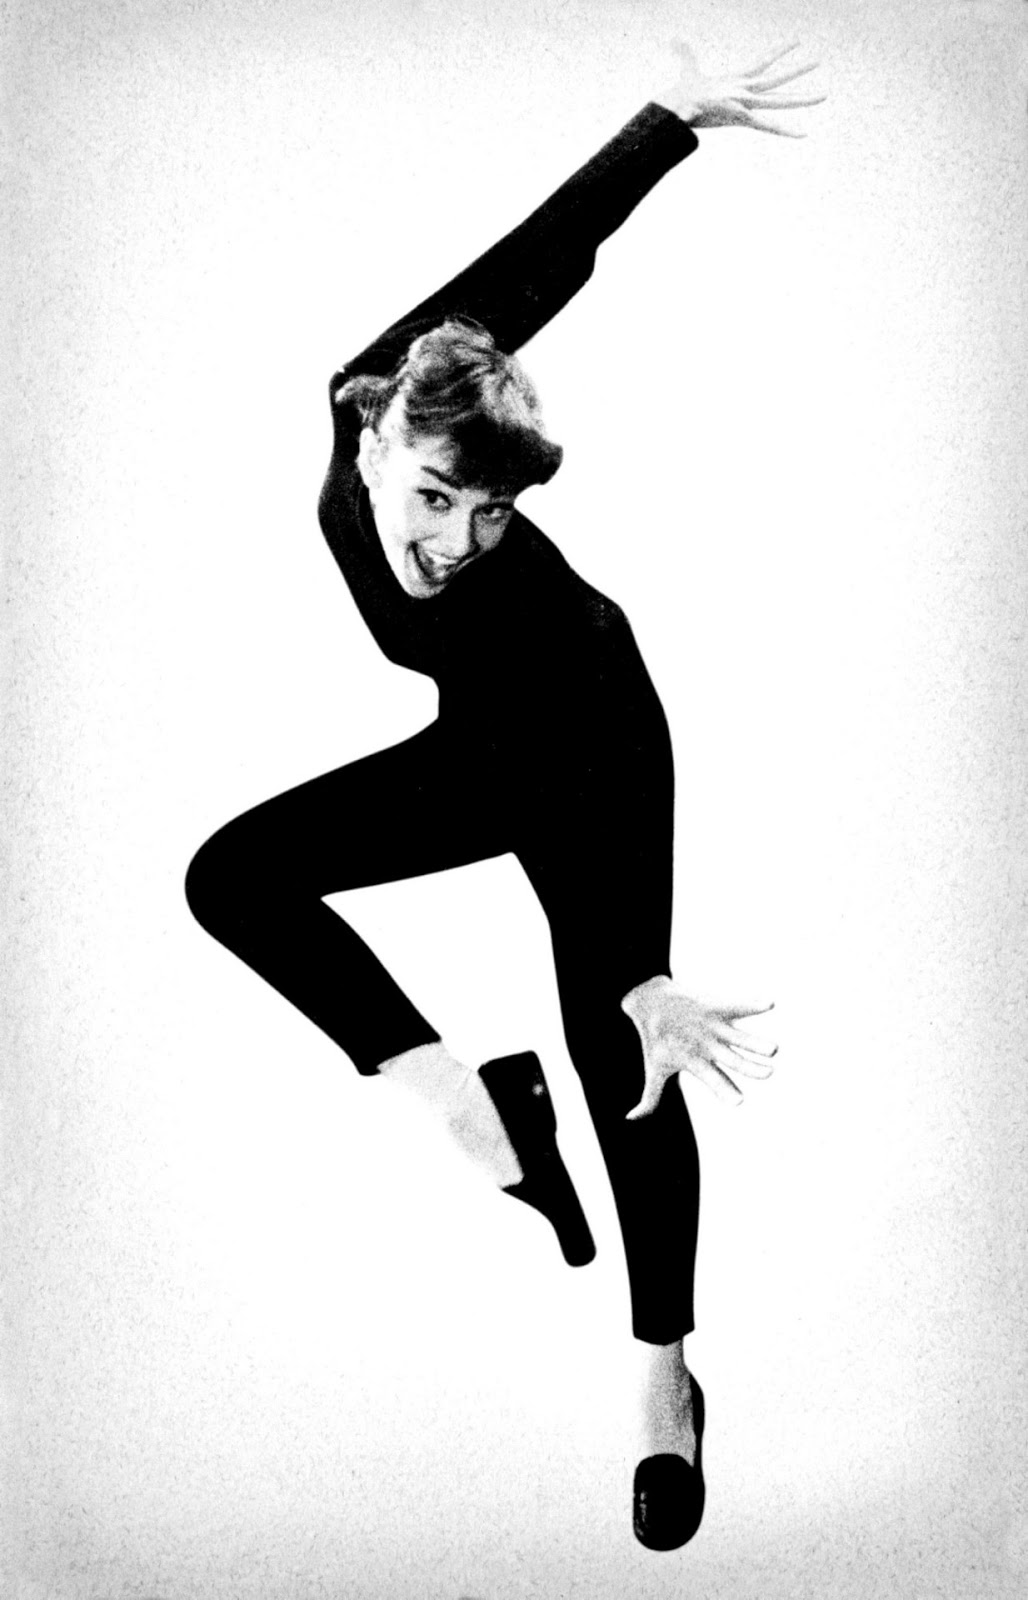 audrey hepburn all black skinny ballet flats outfits that inspire funny face chic